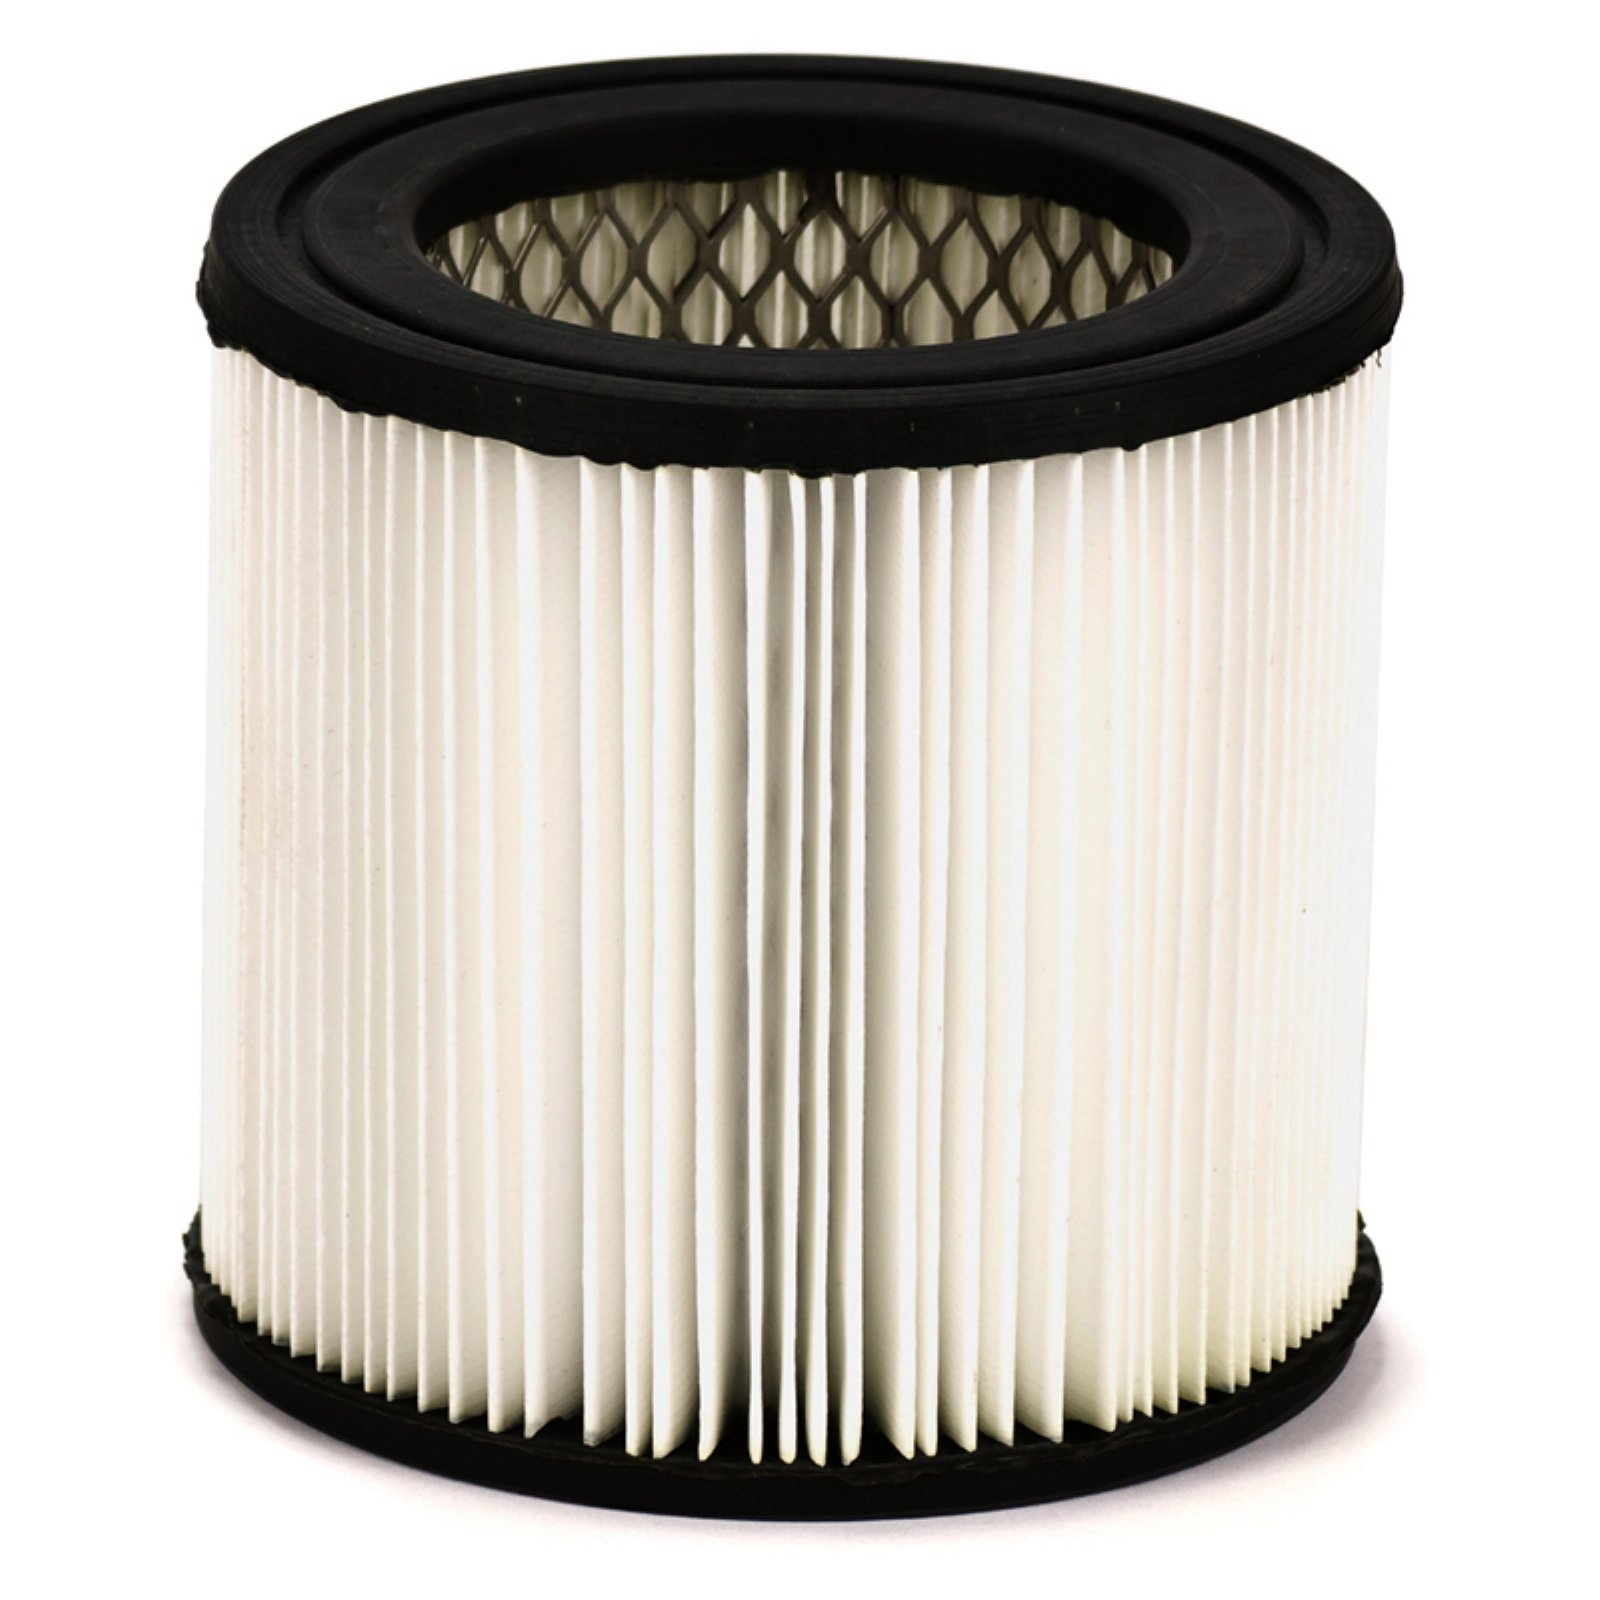 Universal Cartridge Filter for Canister Vacuum Cleaners